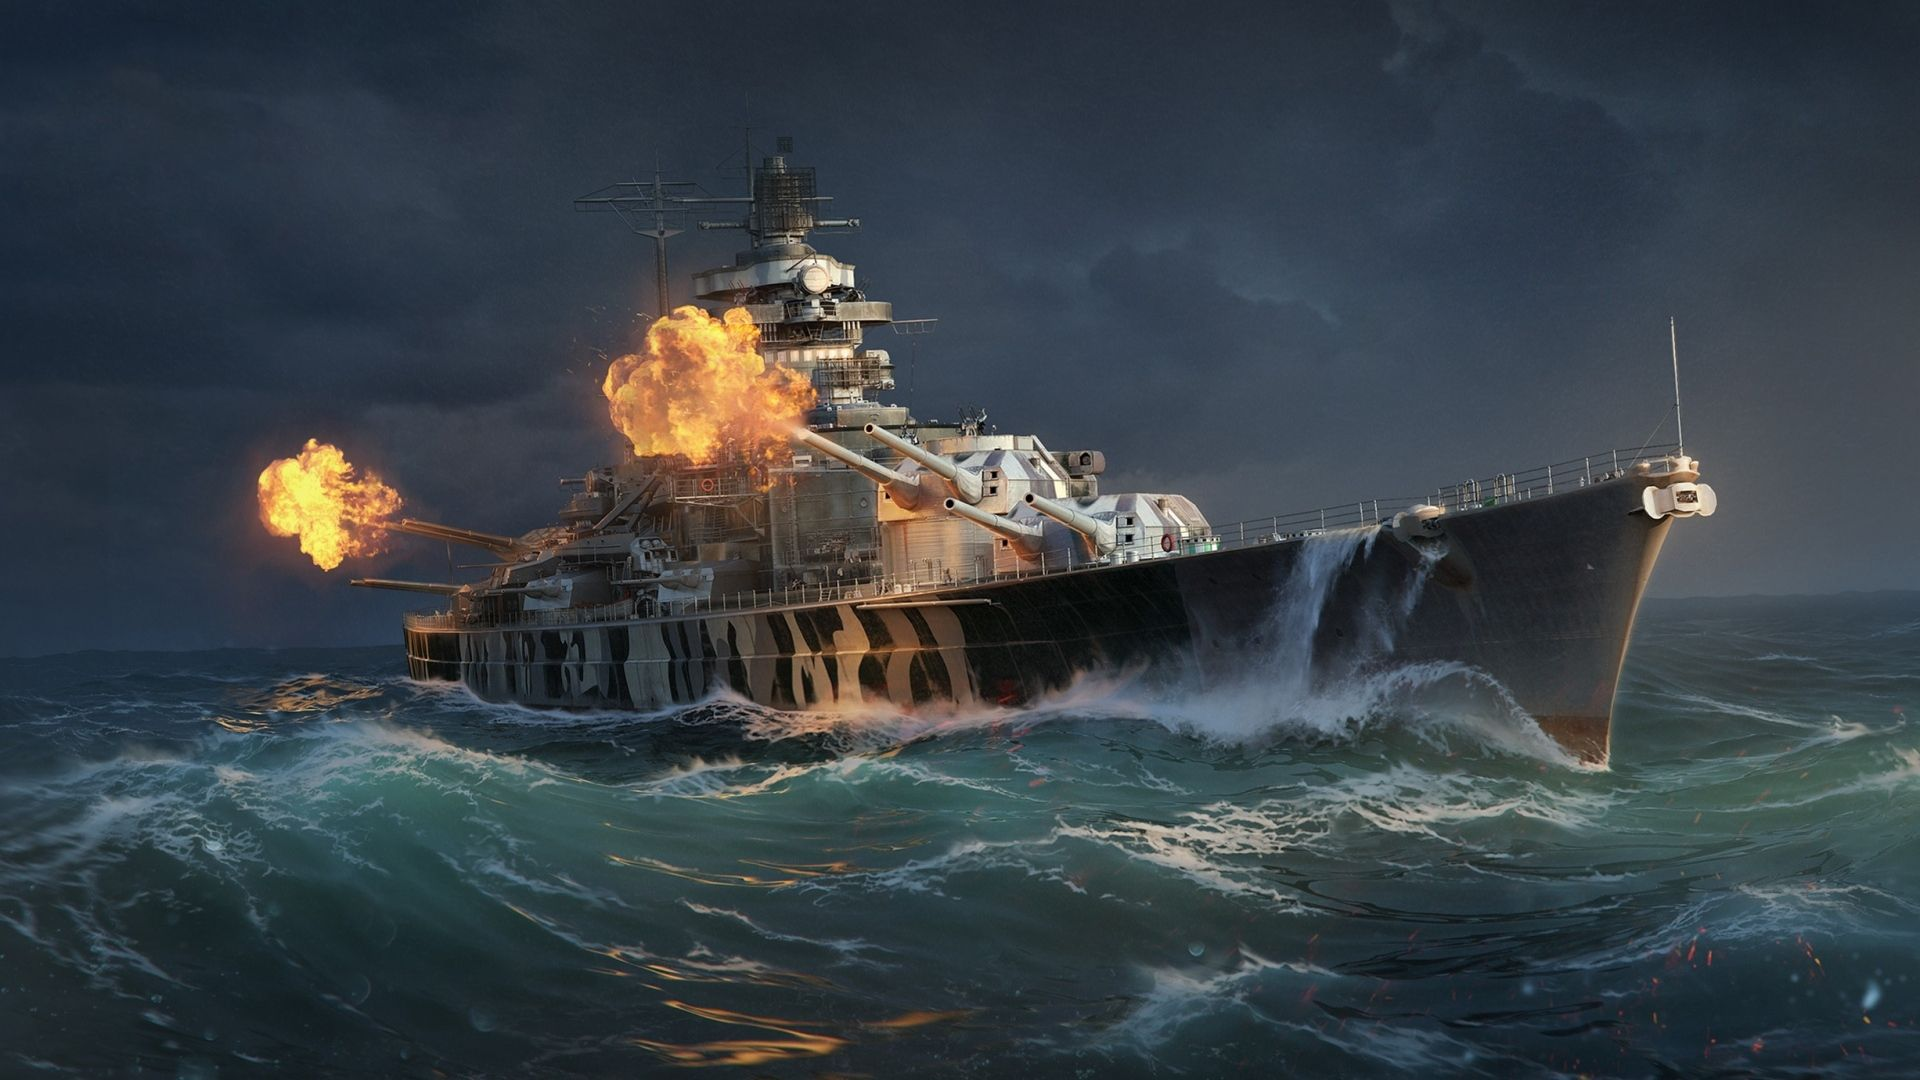 battleship wallpapers sparkly photo - photo #42